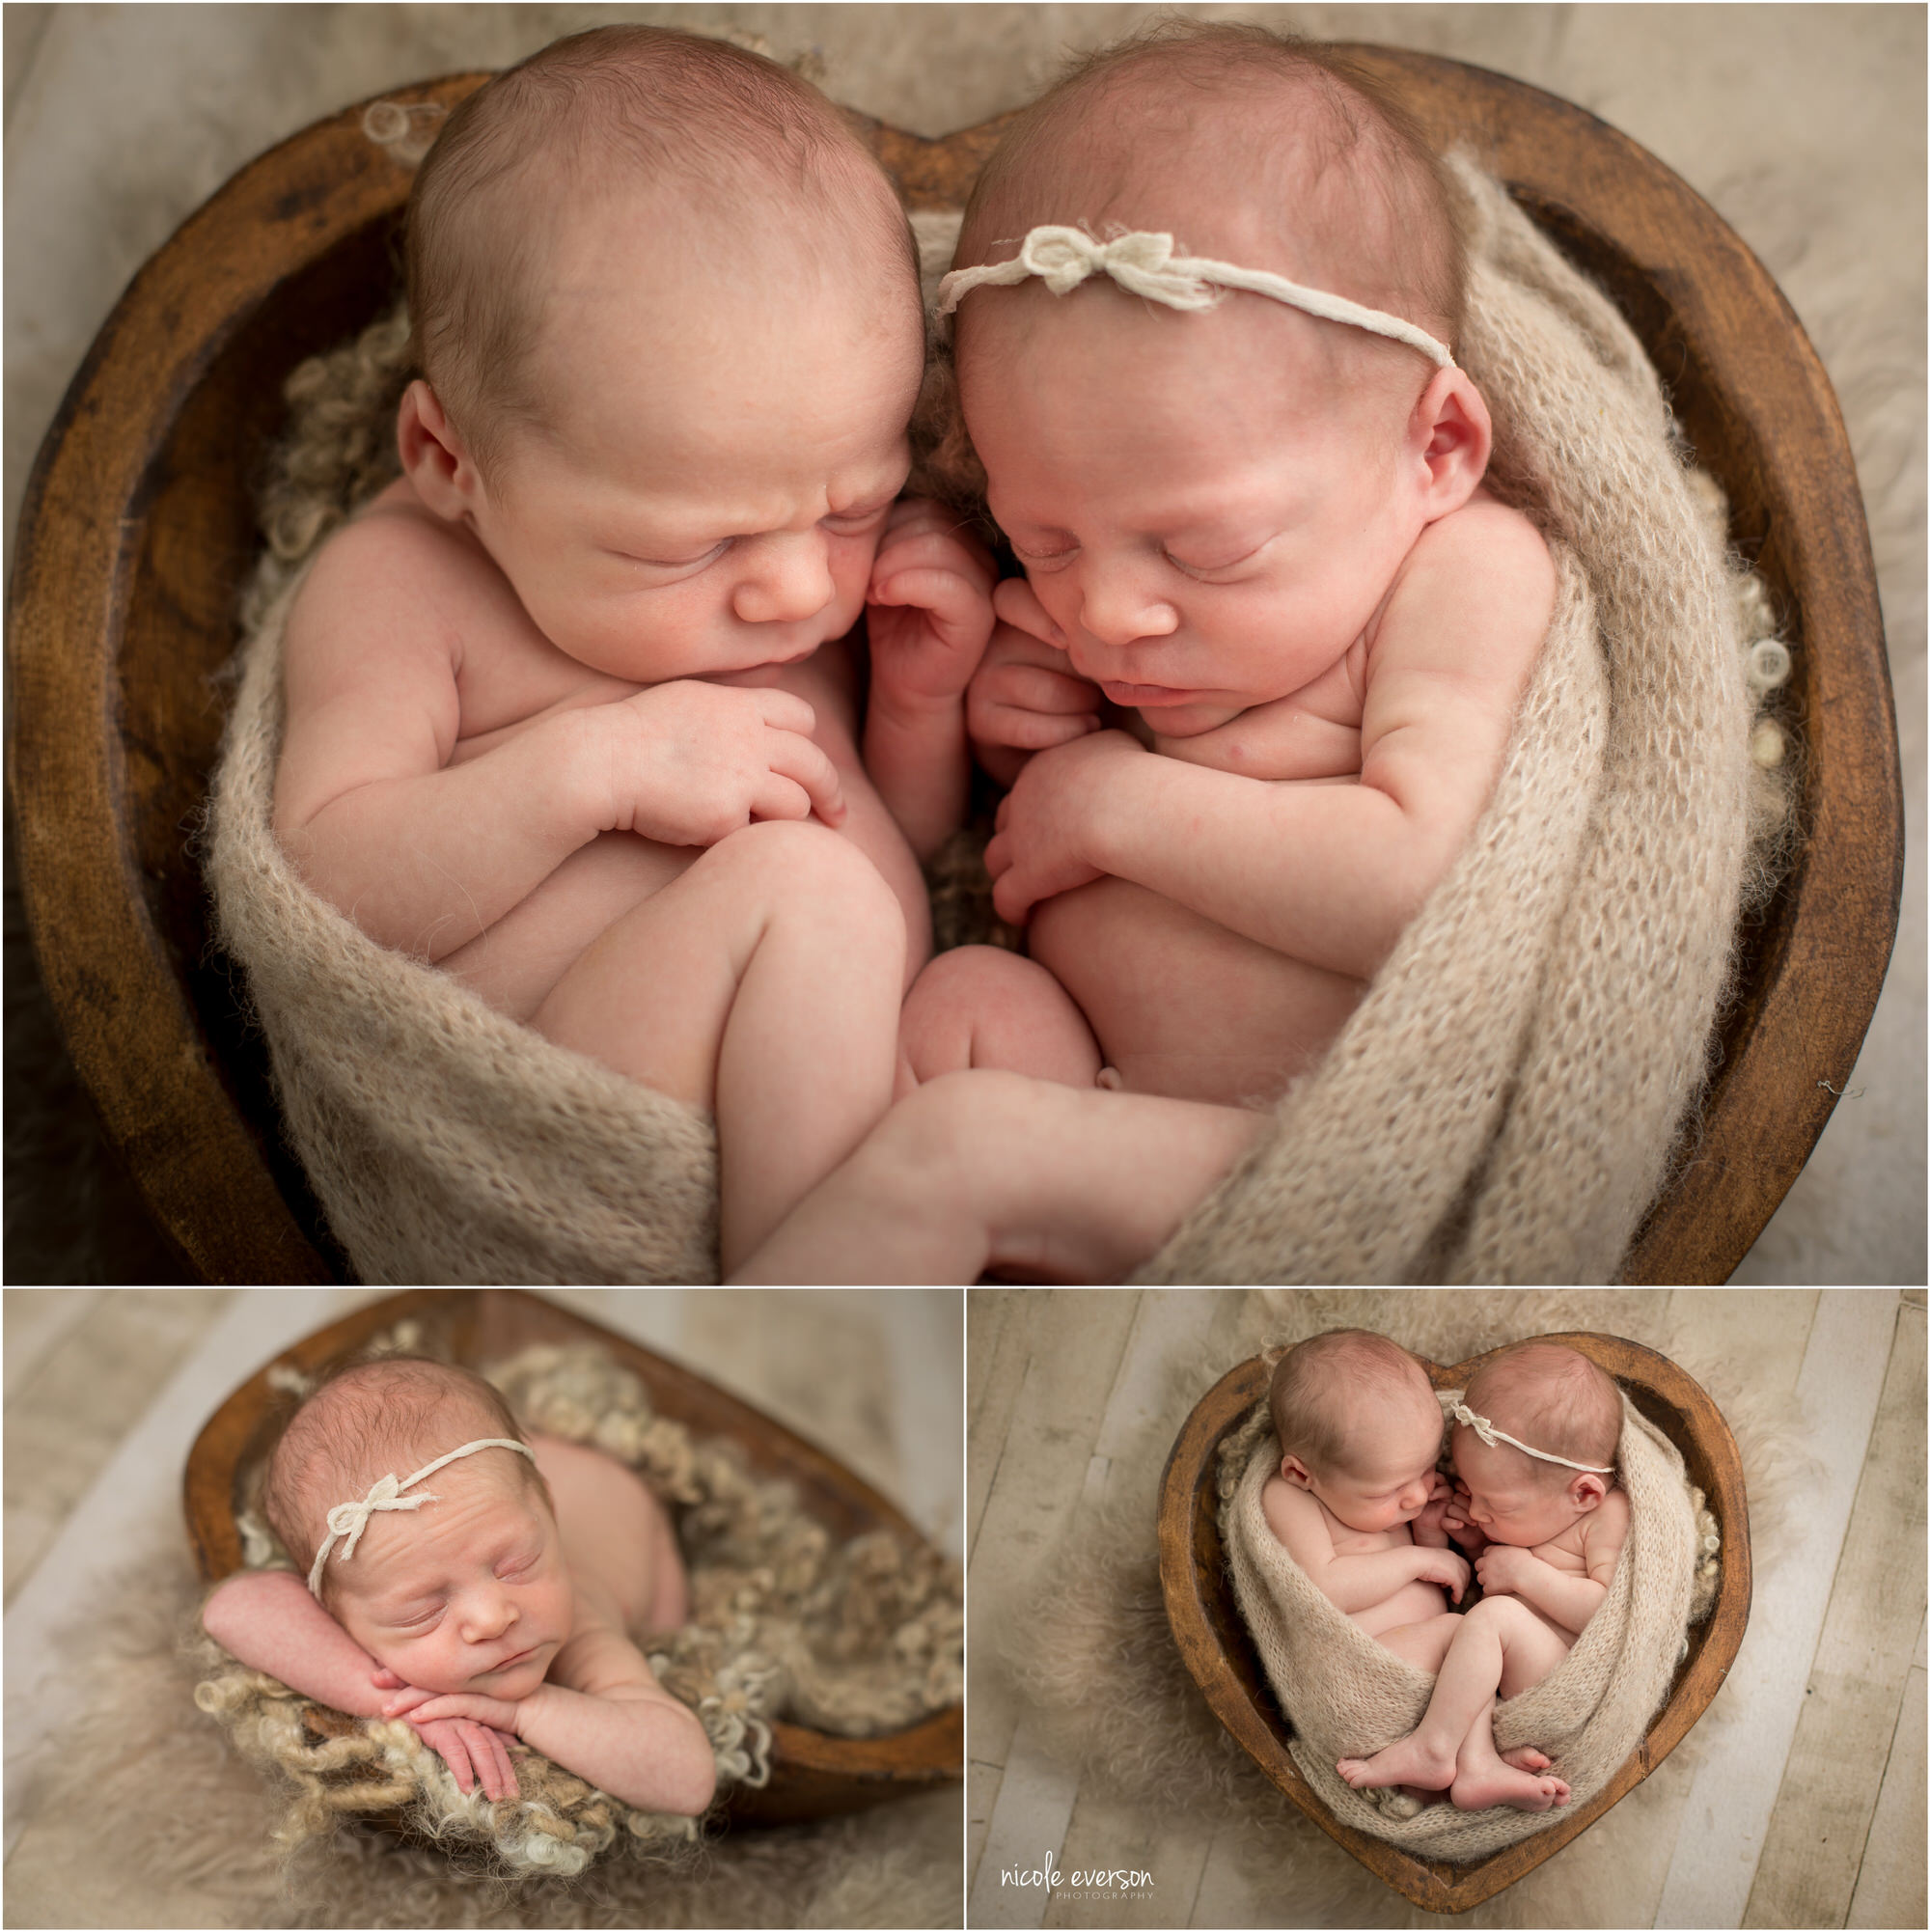 Newborn twins in a heart-shaped bowl, wrapped in sand-colored blanket.